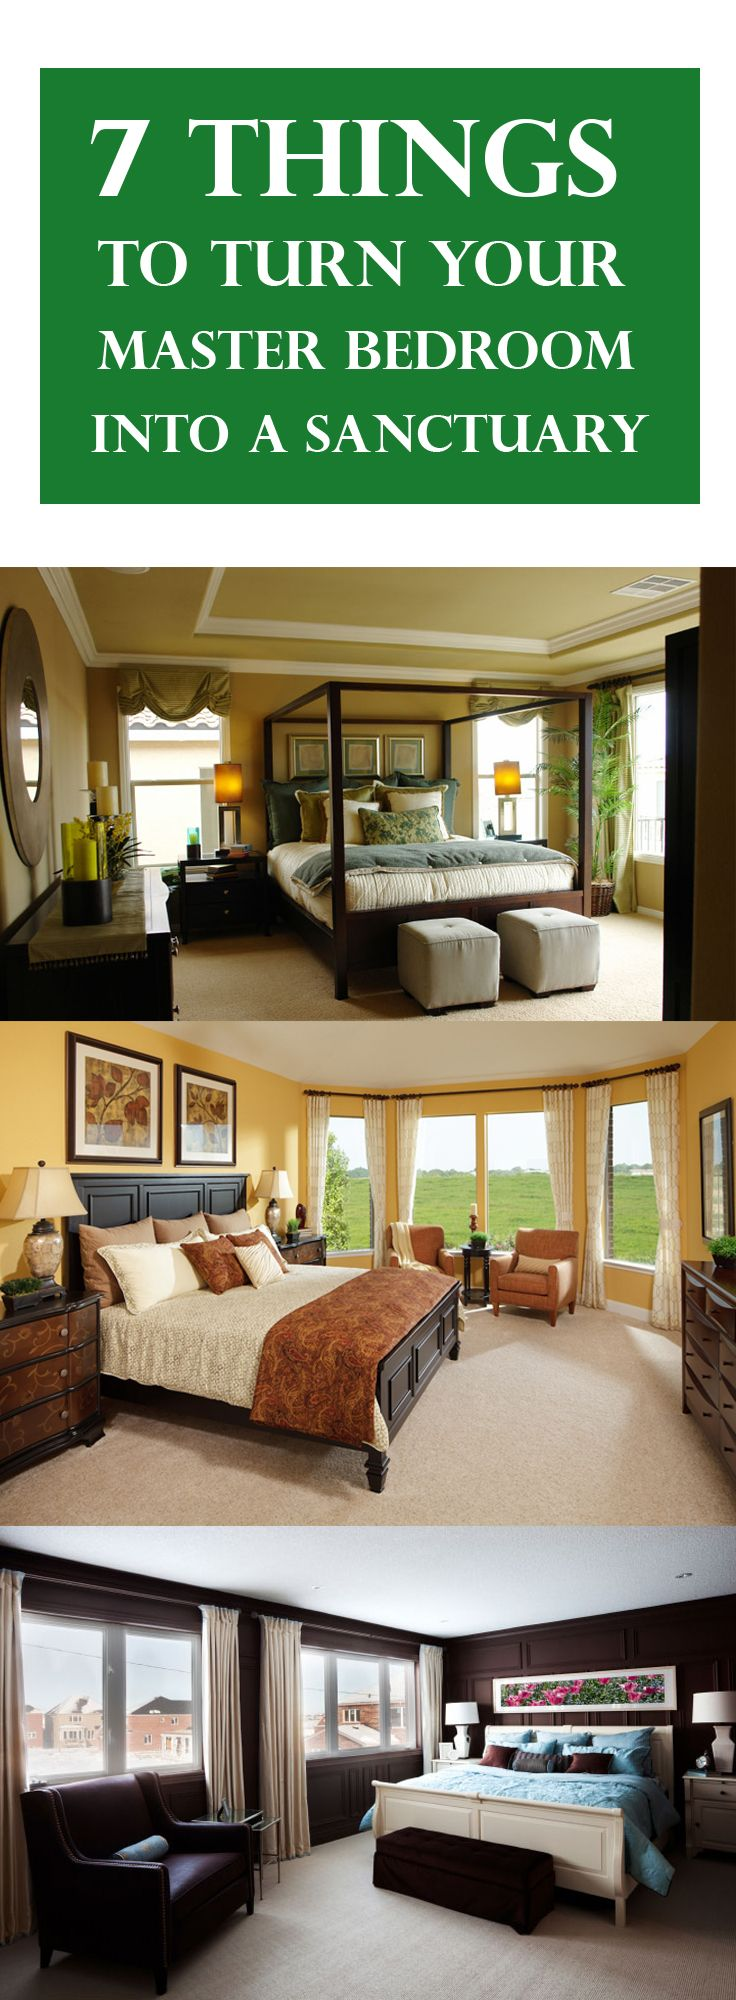 7 Things To Turn Your Master Bedroom